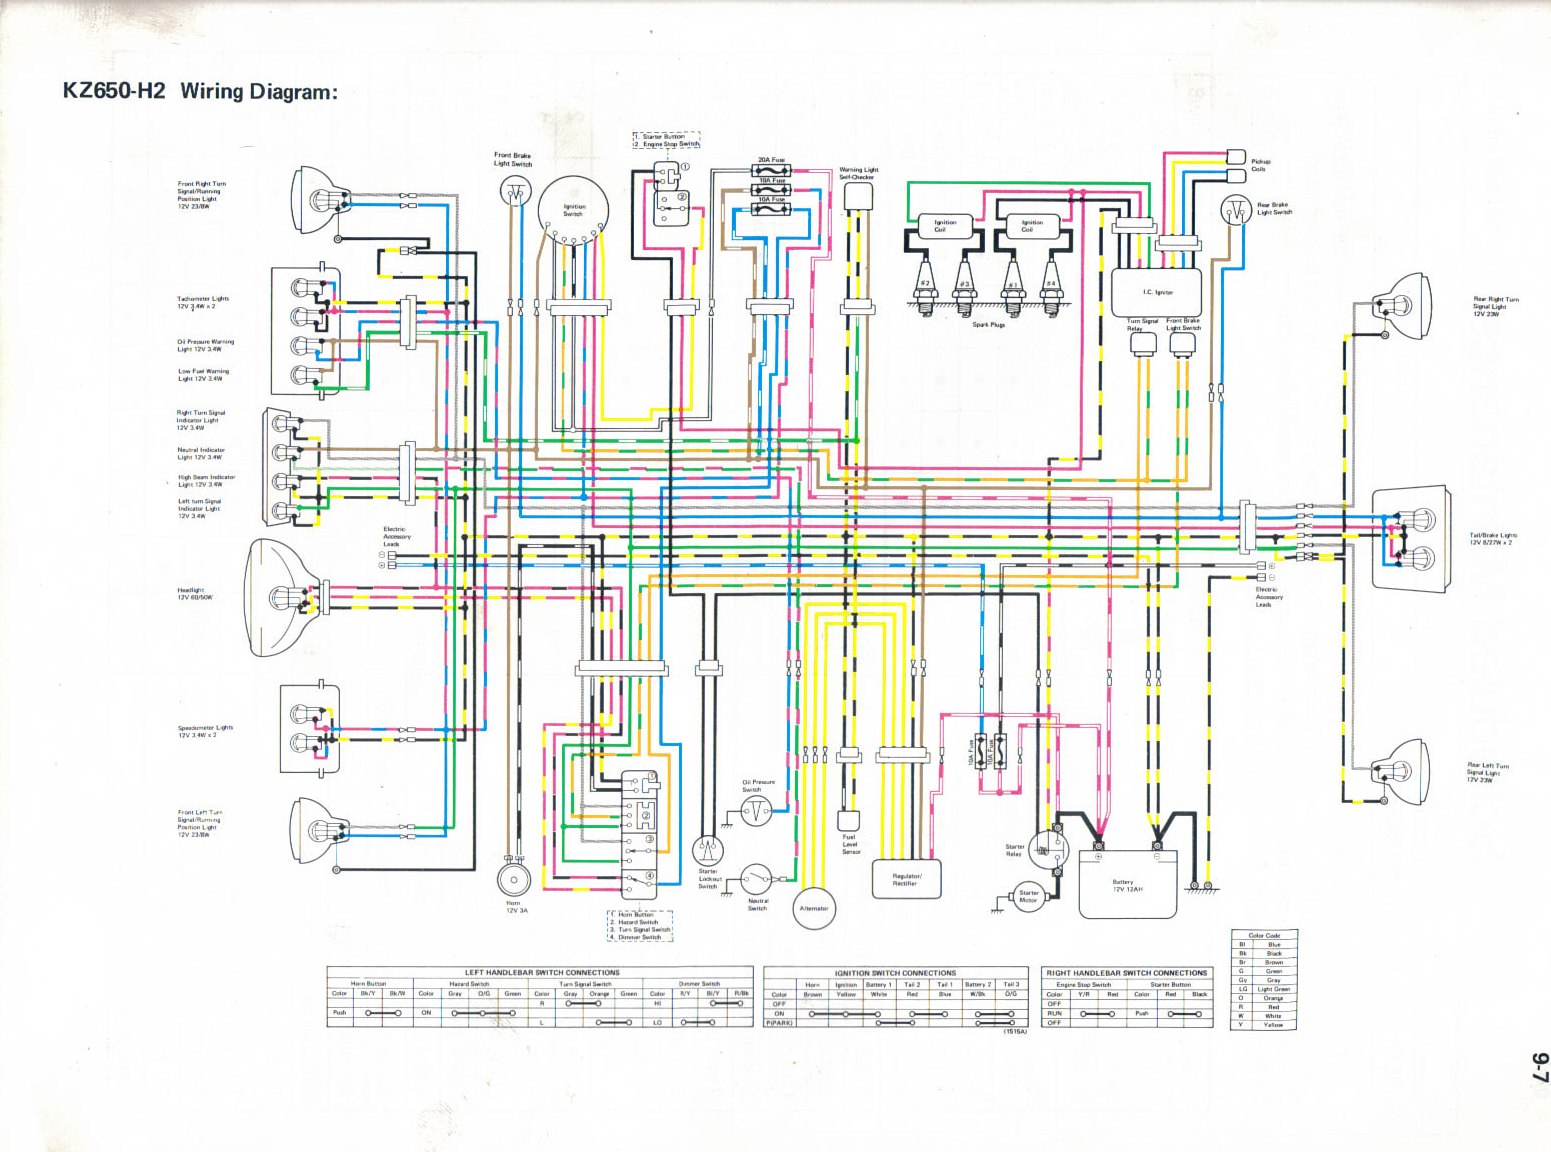 2006 Kawasaki Zzr600 Wiring Diagram - Wiring Diagram M2 on